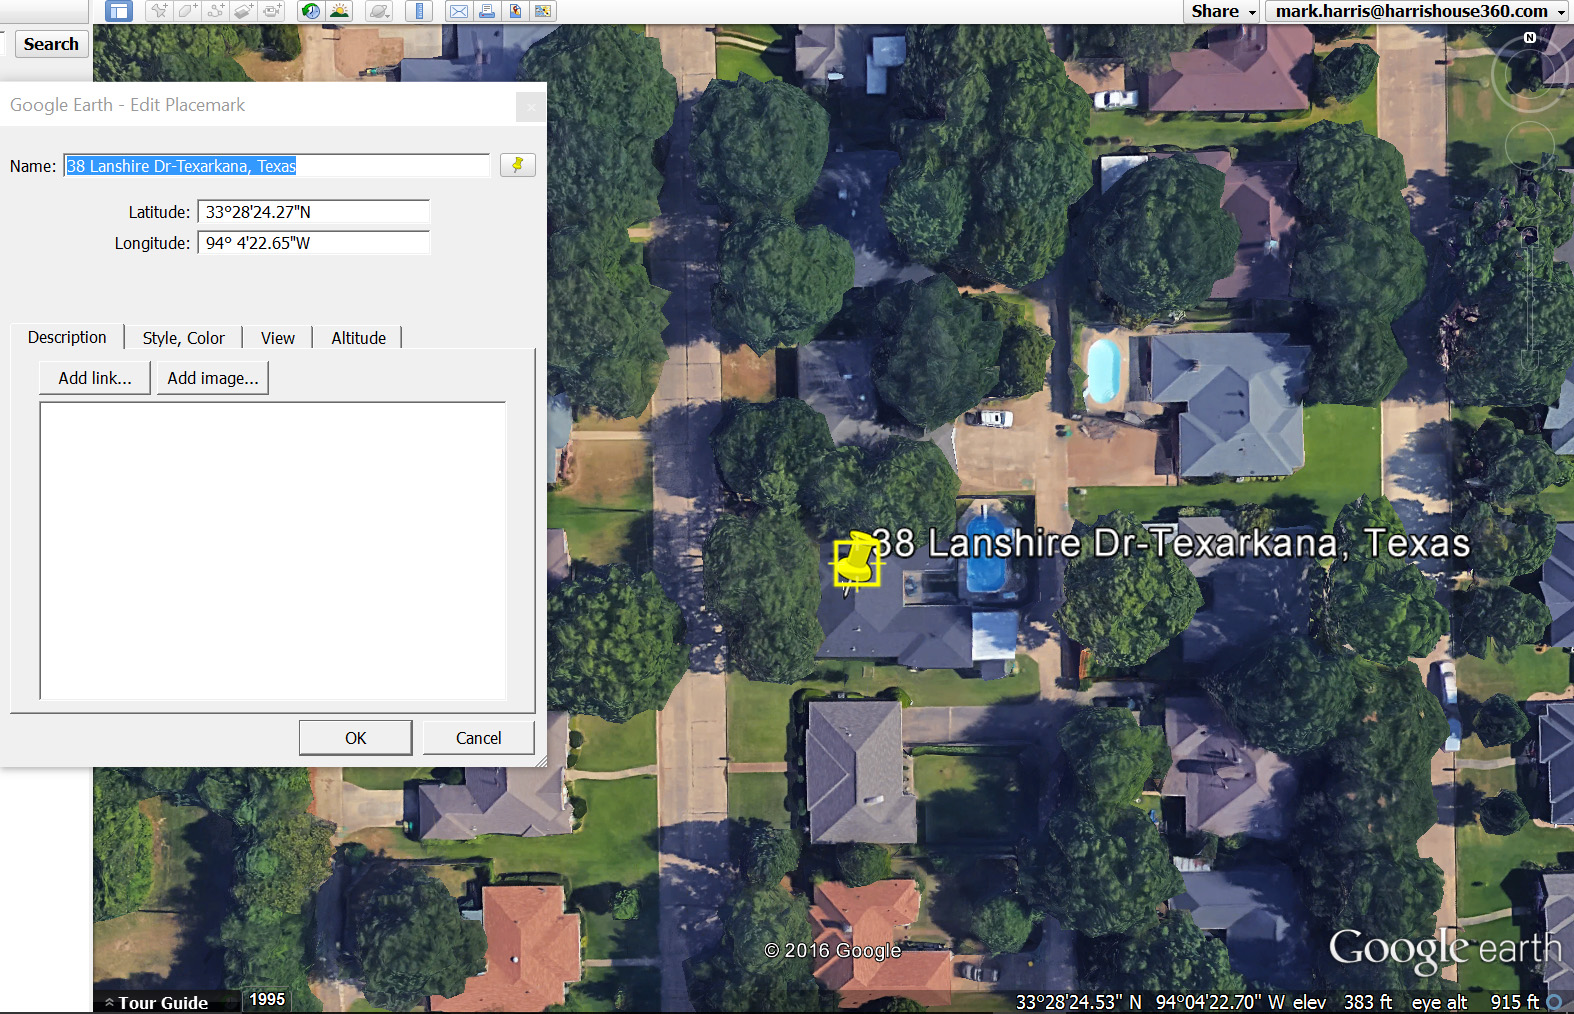 Create Google Earth Movies for your Listings - Part 2